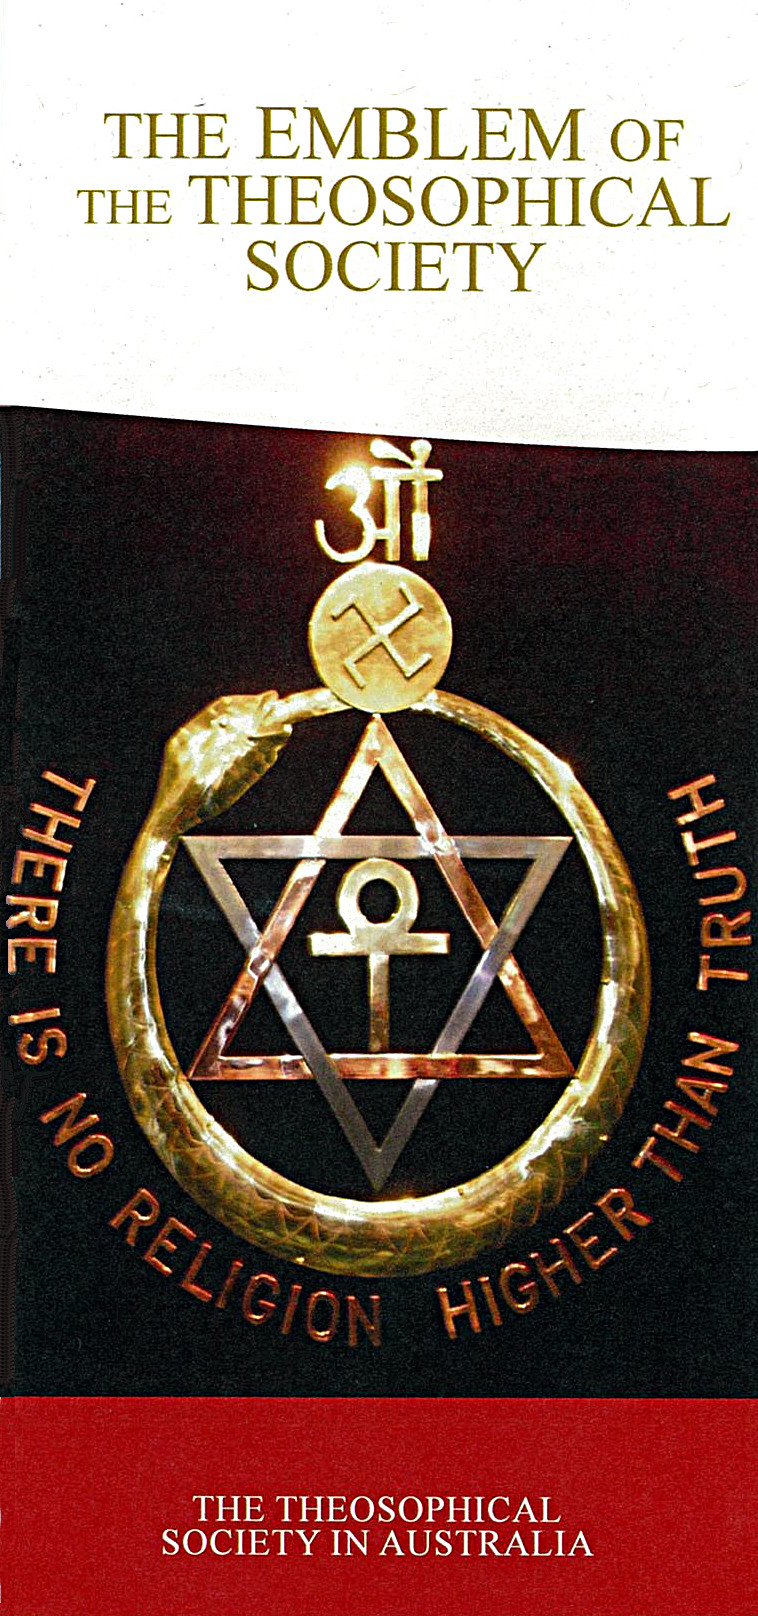 Leaflet: The Emblem of the Theosophical Society